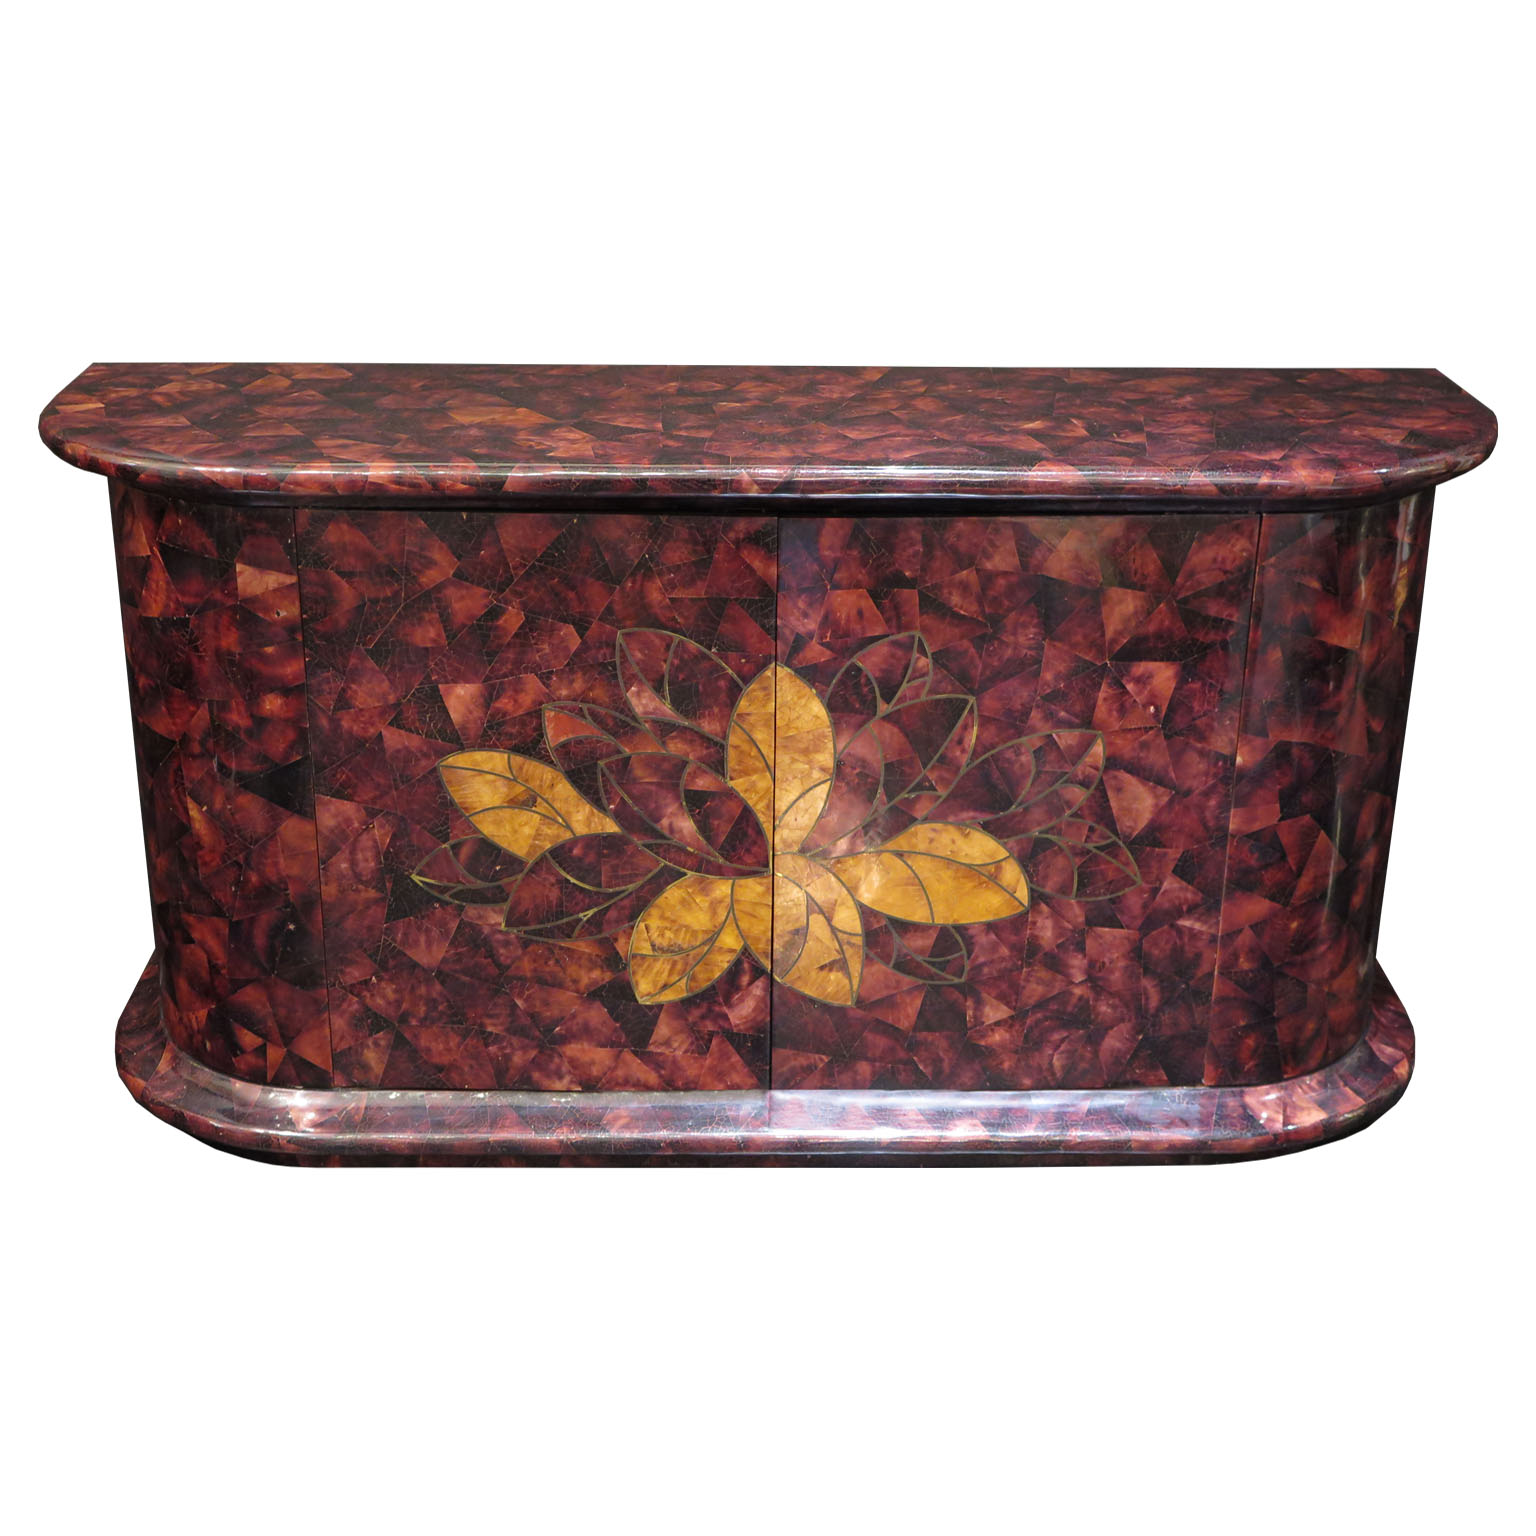 Purple tortoise shell bar console sideboard cabinet with leaves and brass